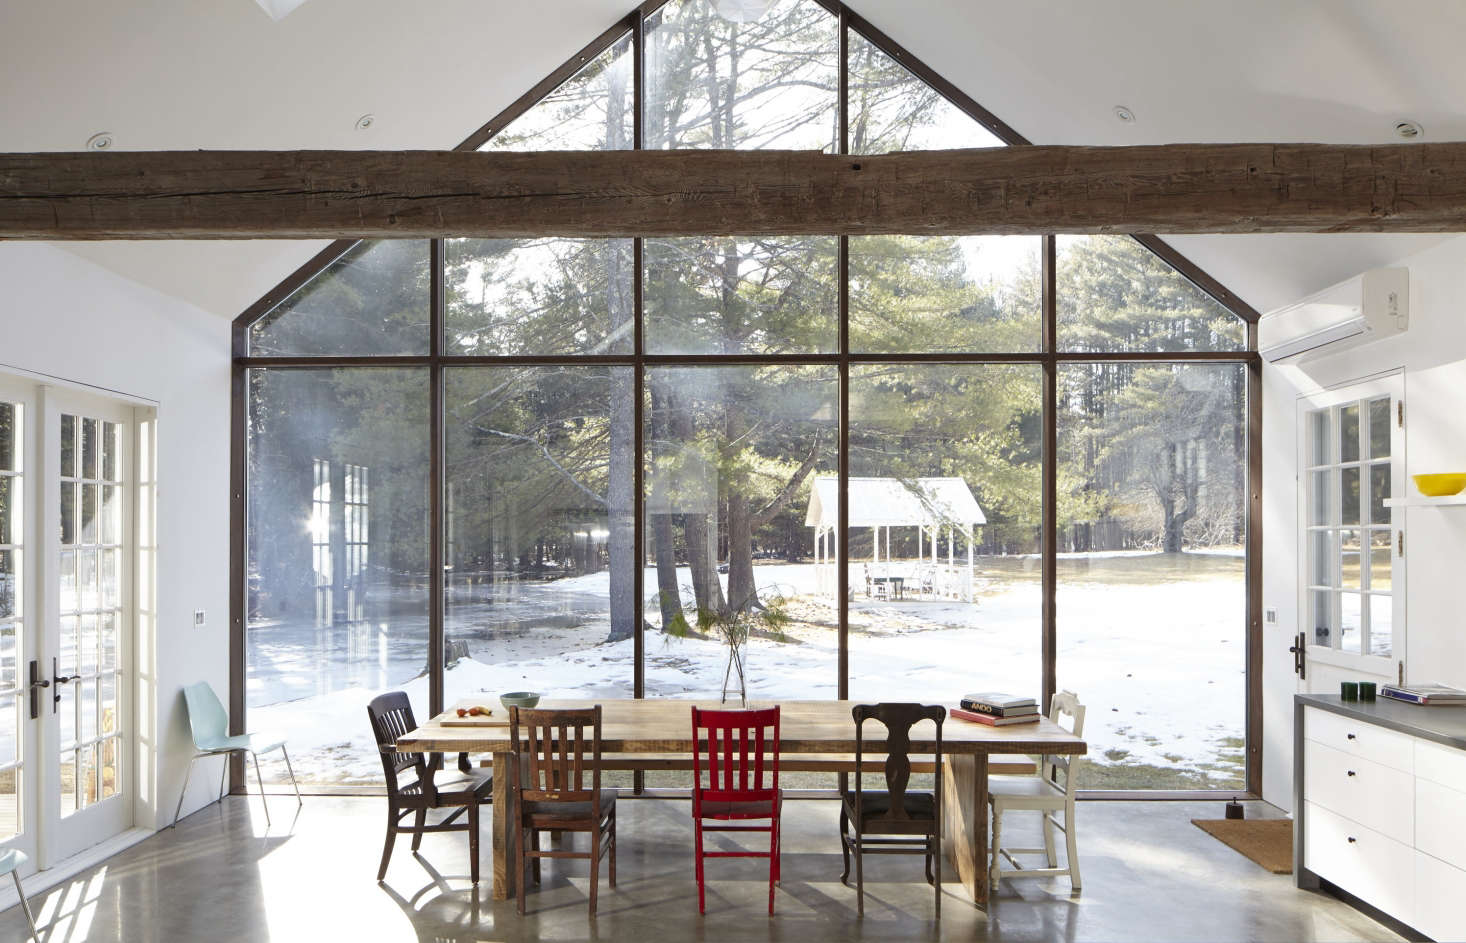 The kitchen resides in a modern addition that echoes the roofline of the original house. The 22-foot-high glazed curtain wall is skyscraper glass in a steel framework; it overlooks a brook and a gazebo.